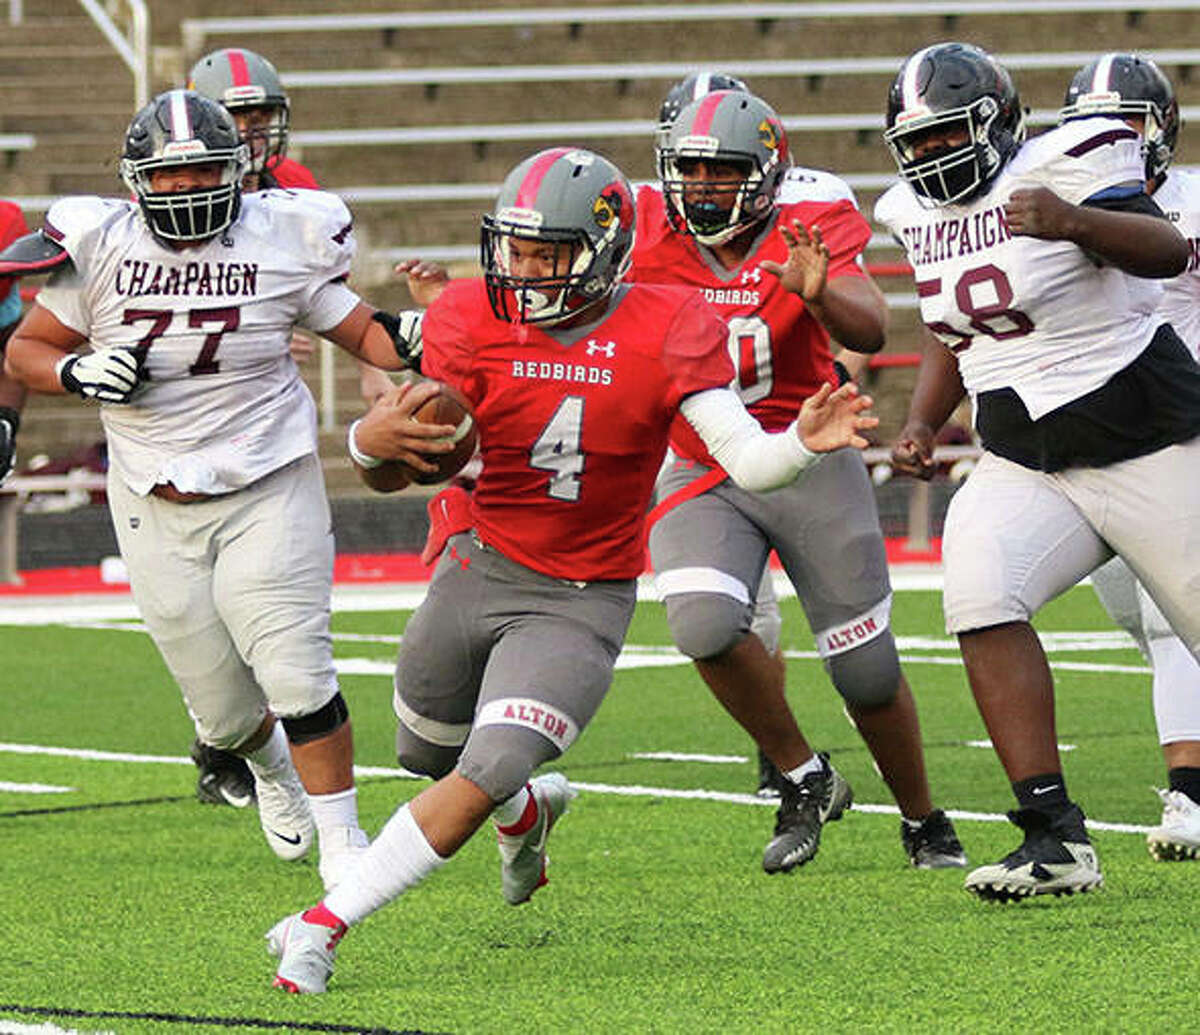 Alton quarterback Keith Gilchrese (4) heads upfield with Champaign Central linemen in pursuit during a March 30 game at Public School Stadium in Alton. The Redbirds finish their season Friday night at Belleville West.